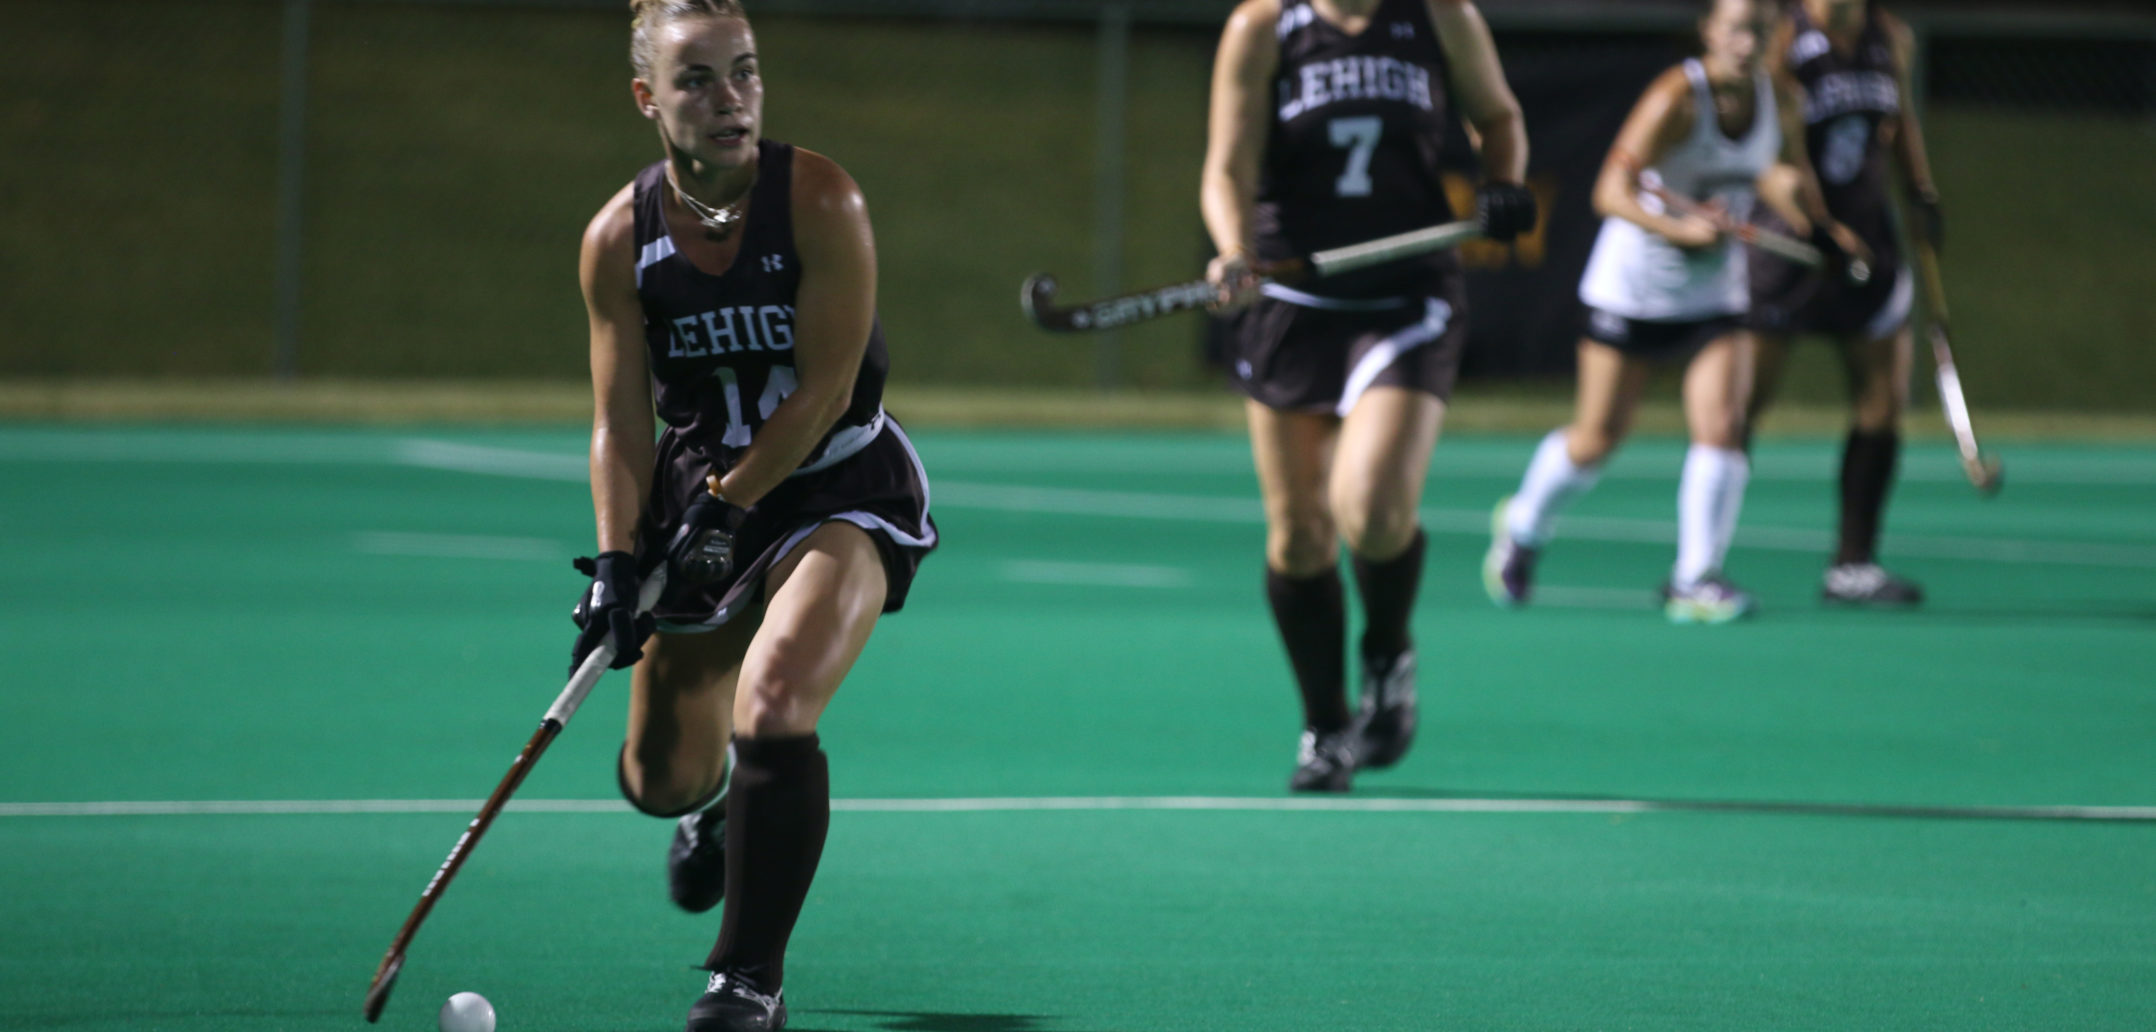 Sophomore captain midfielder Trish Reilly looks upfield to clear the ball out of Lehigh's zone after a Lafayette shot on Friday, Oct. 6th, 2017, at the Ulrich Sports Complex. Reilly had a very strong defensive showing. (Maddy Hite/B&W Staff)